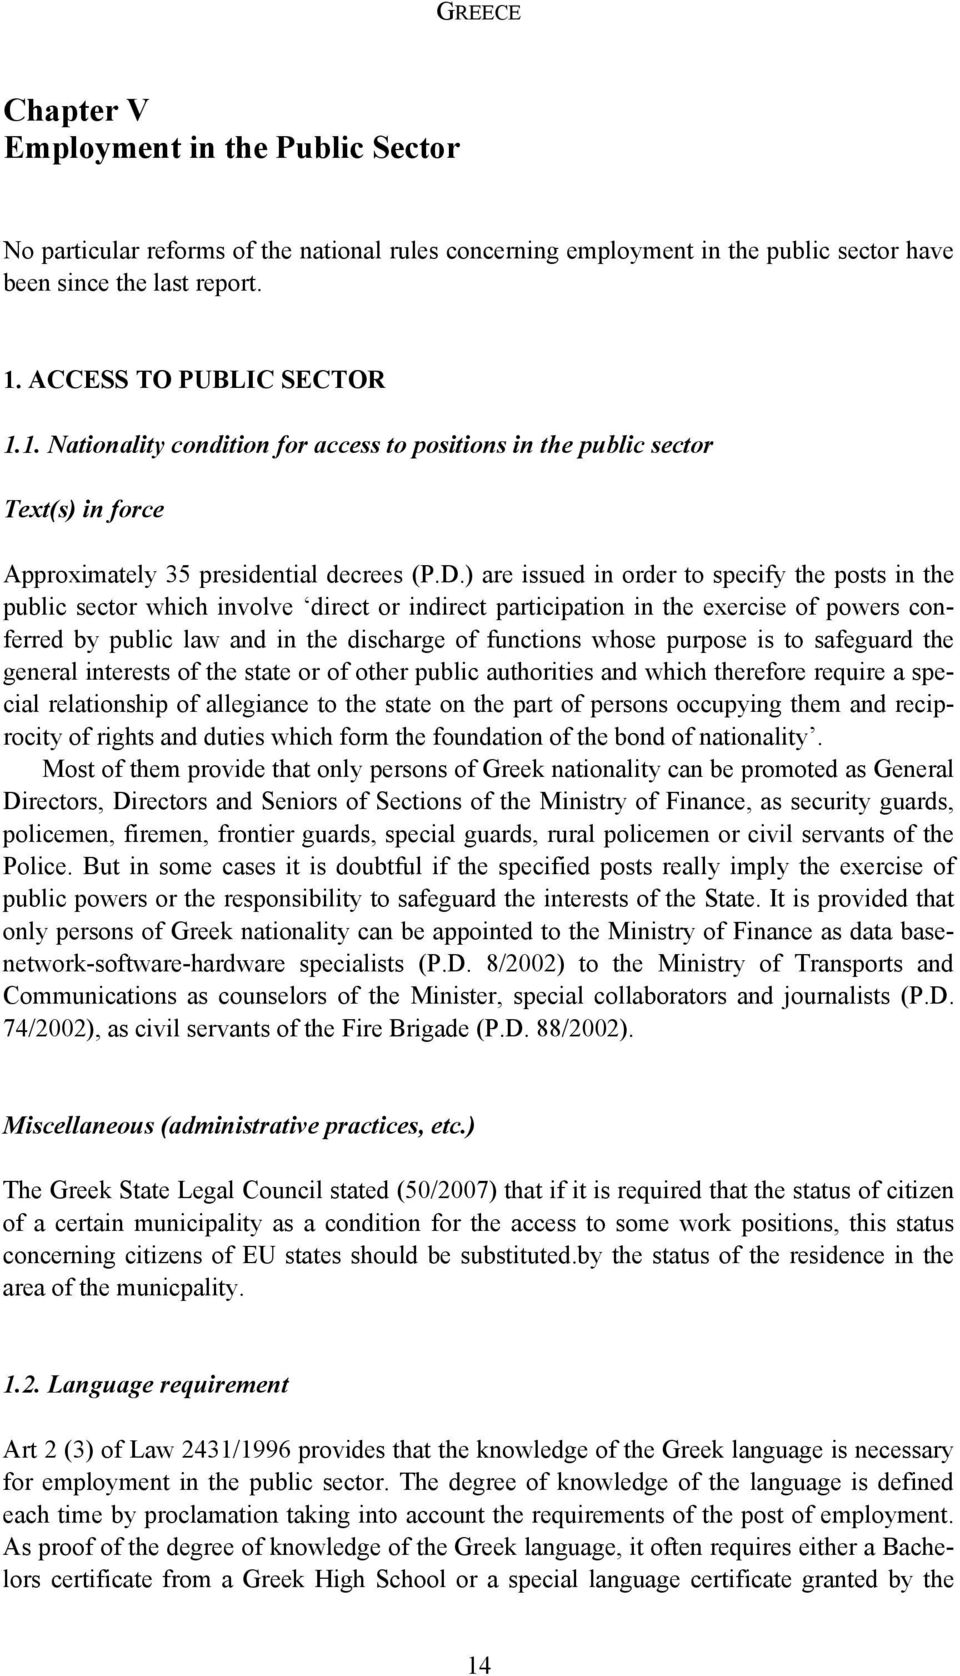 ) are issued in order to specify the posts in the public sector which involve direct or indirect participation in the exercise of powers conferred by public law and in the discharge of functions